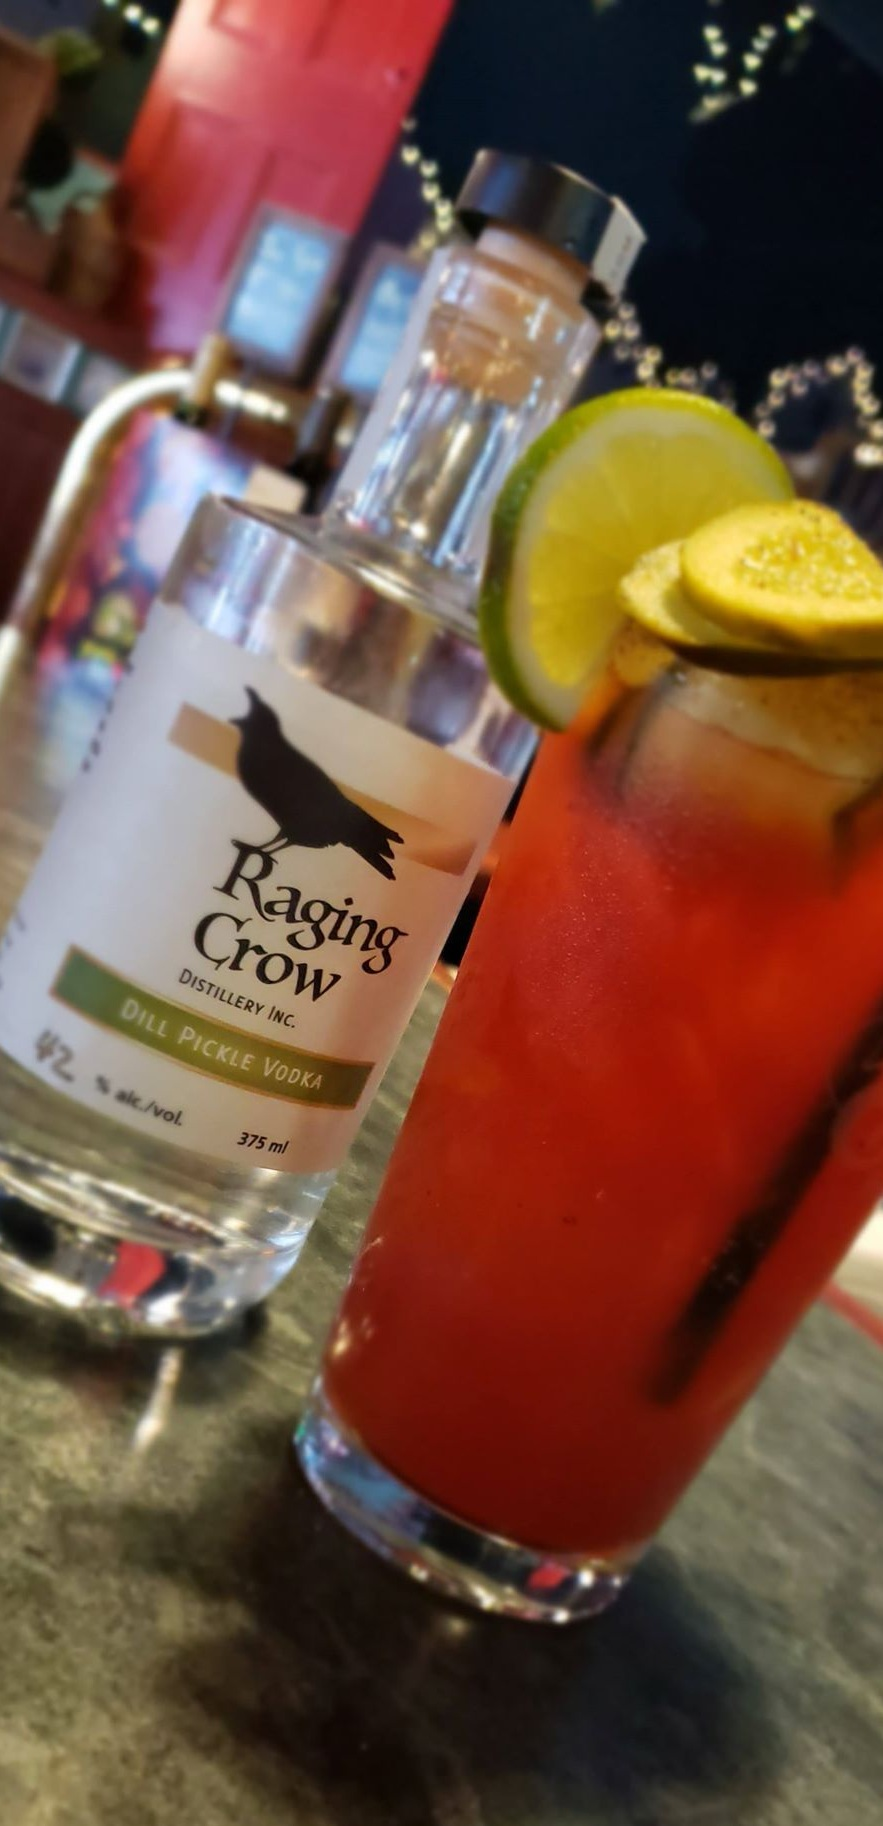 Dill Pickle Caesar - - 1oz Raging Crow Dill Pickle Vodka- 1oz Dill Pickle juice (straight from the bottle)- Tabsaco- Worcestershire- Clamato- Salt & Pepper- Garnished with candied bacon & lime wheel